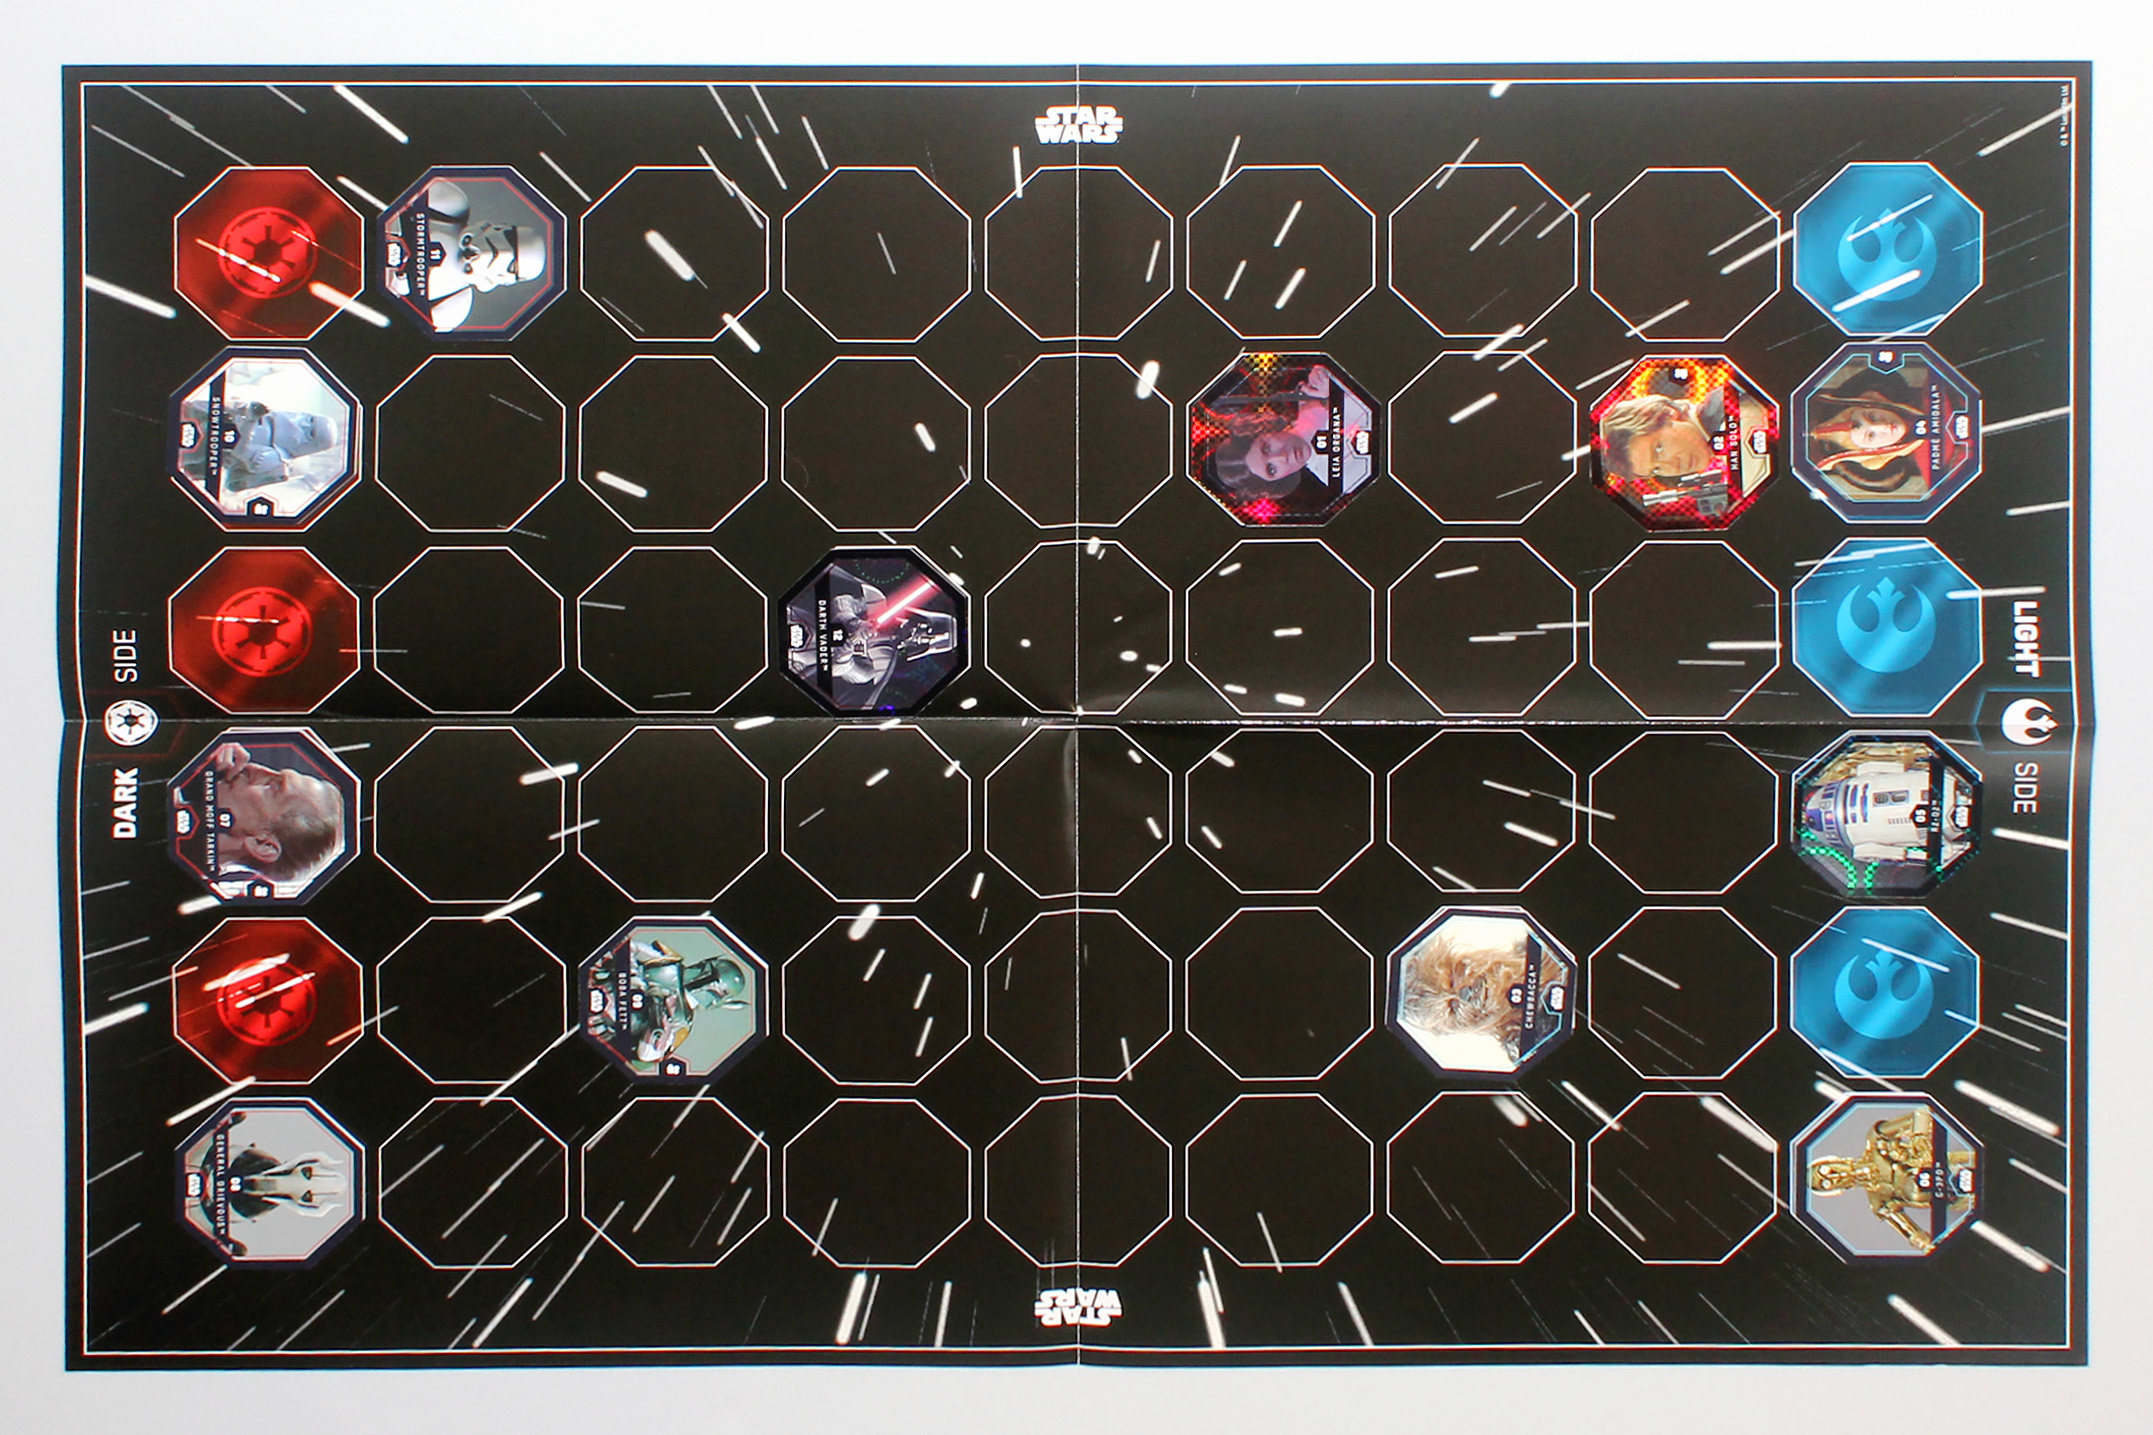 Star Wars Cosmic Shells - Game